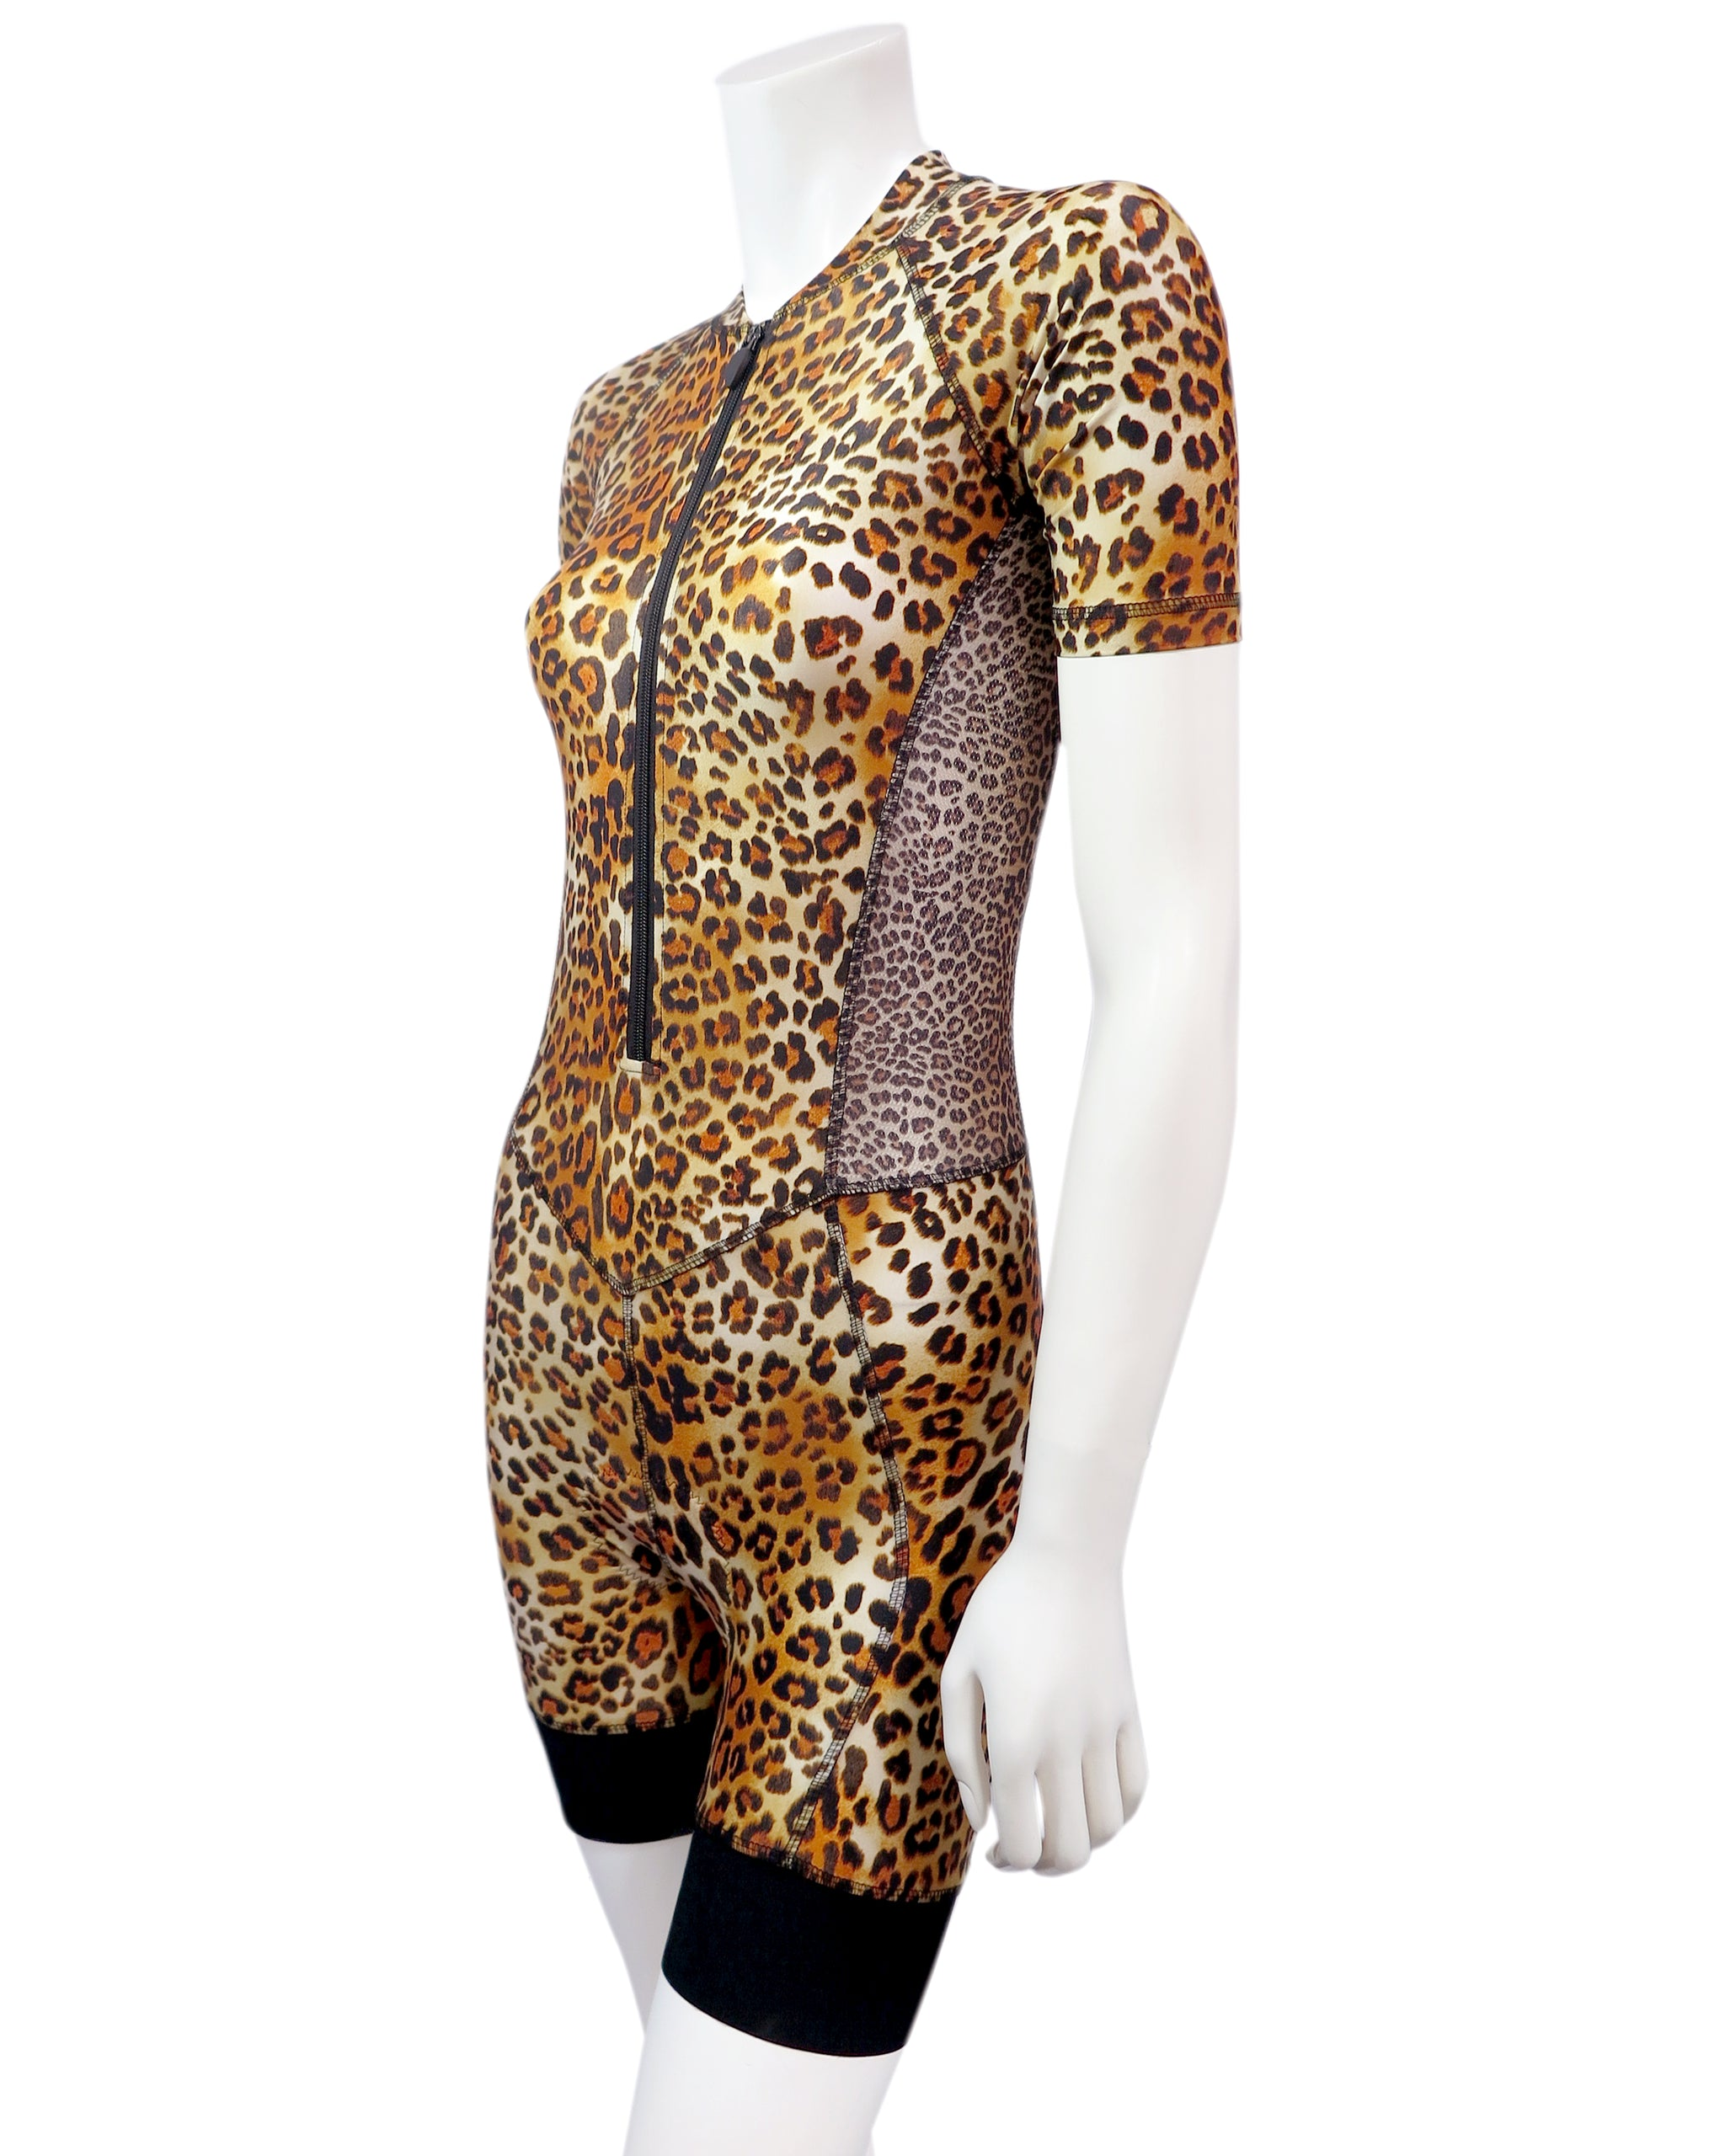 Skinsuit Leopard Print side view